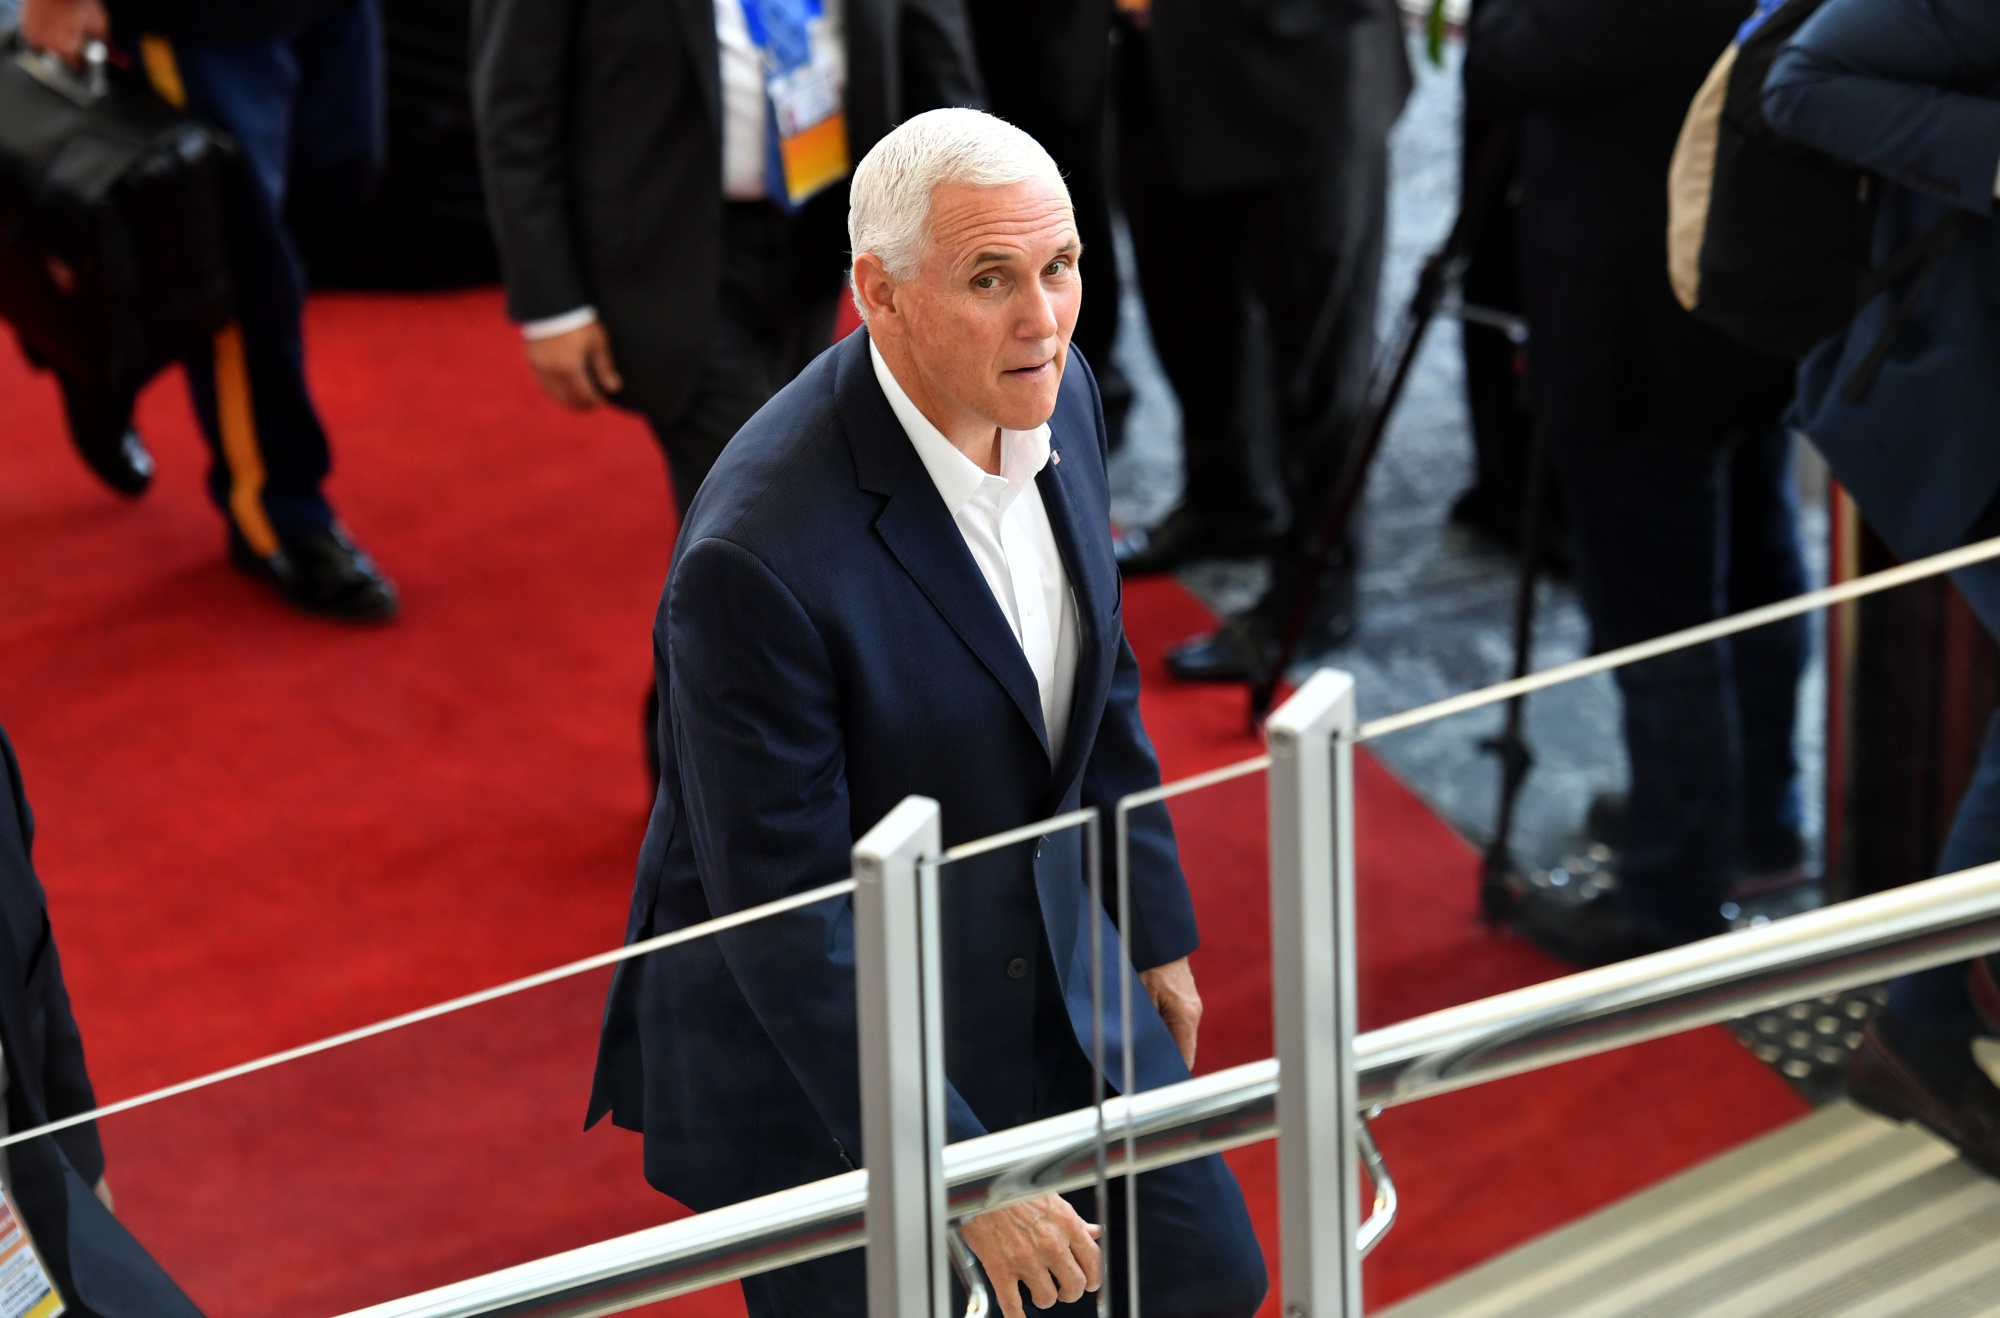 bloomberg.com - Jason Scott - Pence's Sharp China Attacks Fuel Fears of New Cold War